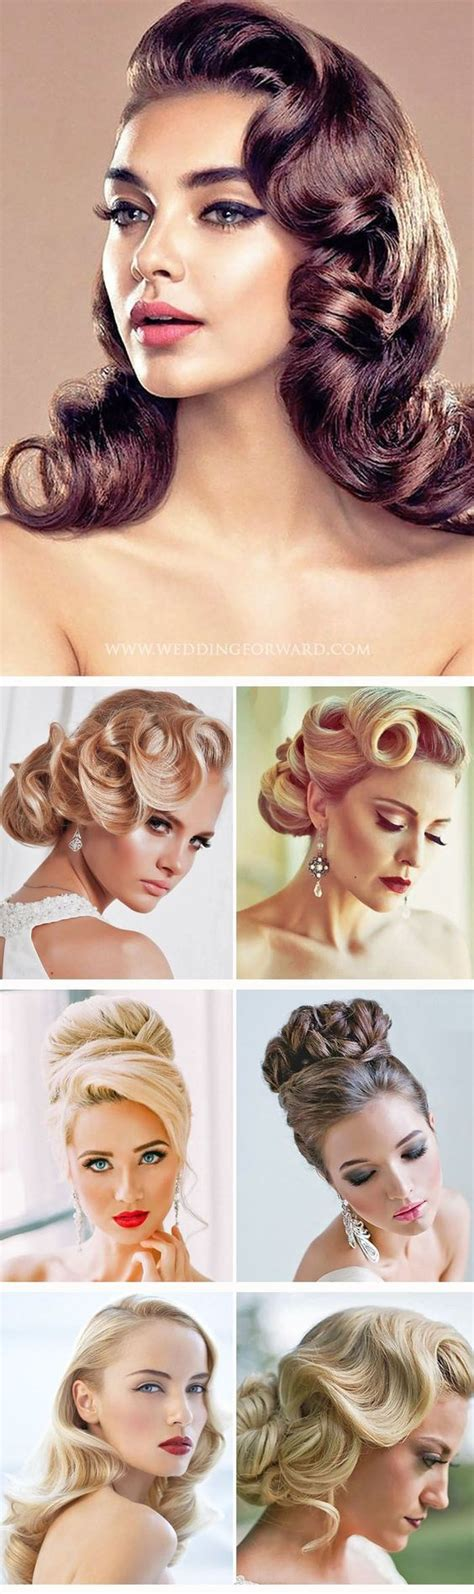 Vintage Wedding Hairstyles Tutorial by 27 Utterly Gorgeous Vintage Wedding Hairstyles Style And